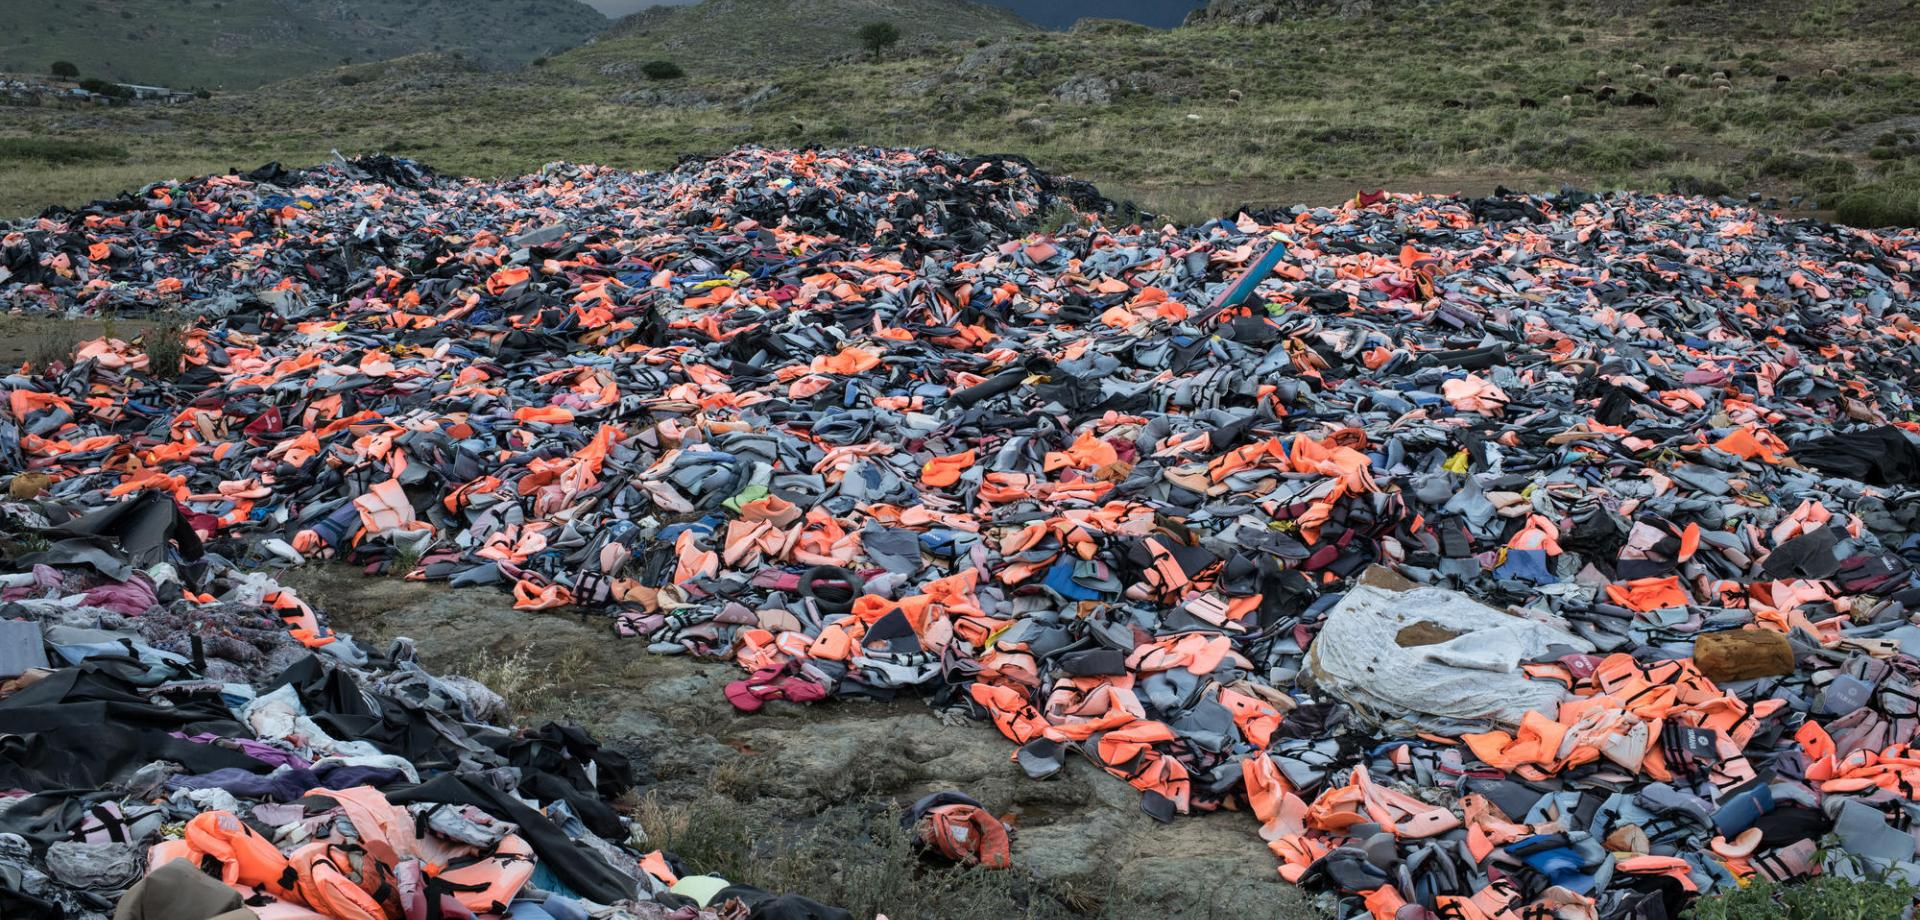 Thousands of life jackets left behind by arriving migrants and refugees, gathered at a dump on the island of Lesvos.